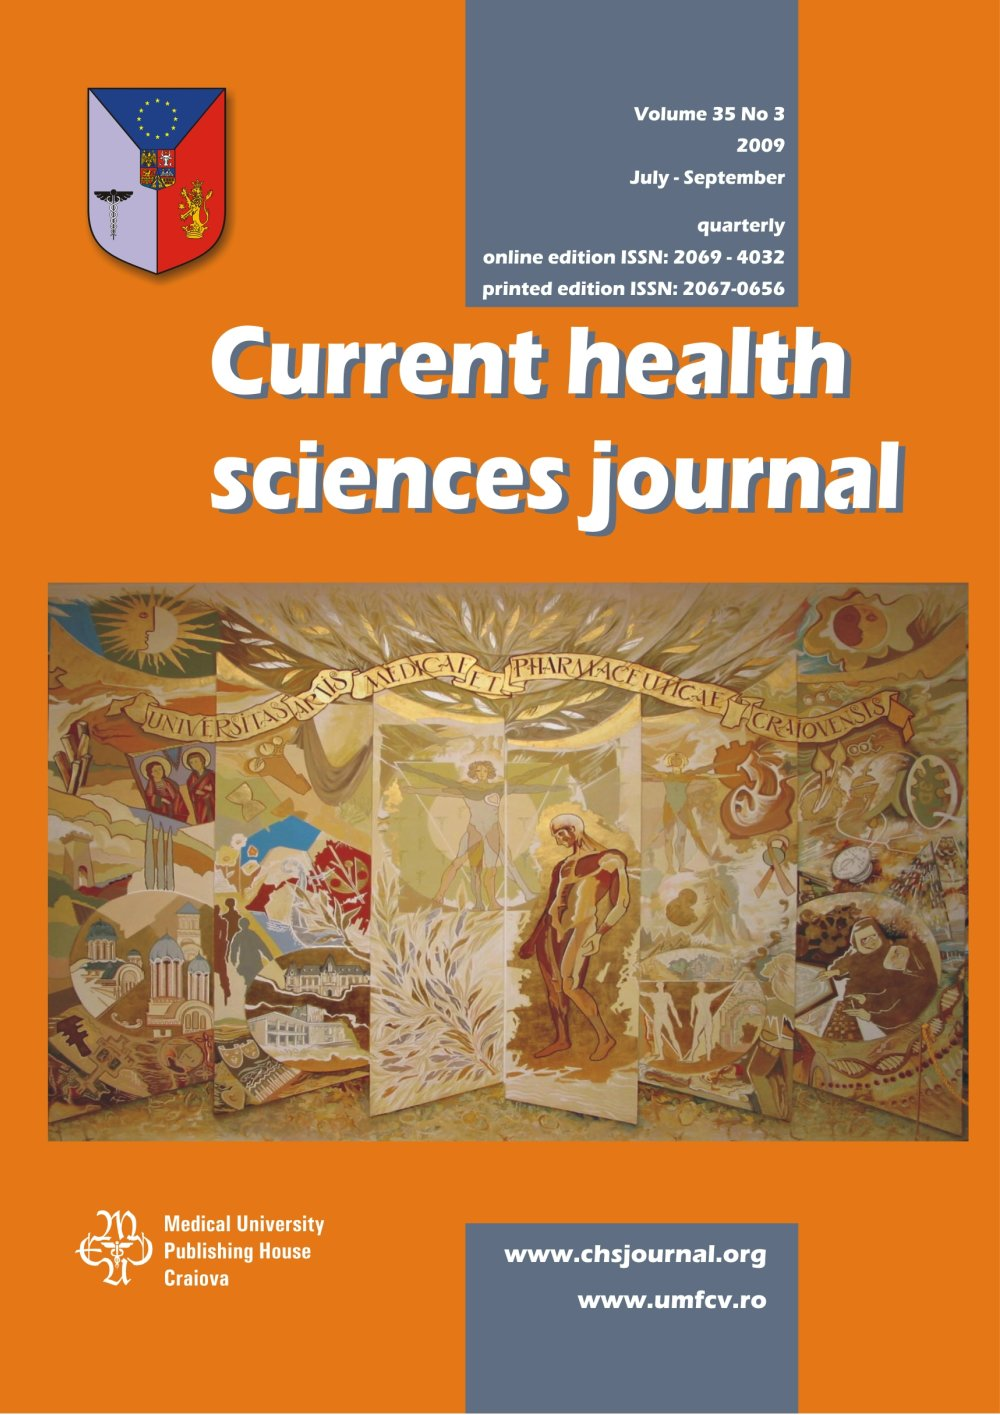 Current Health Sciences Journal, vol. 35 no. 3, 2009